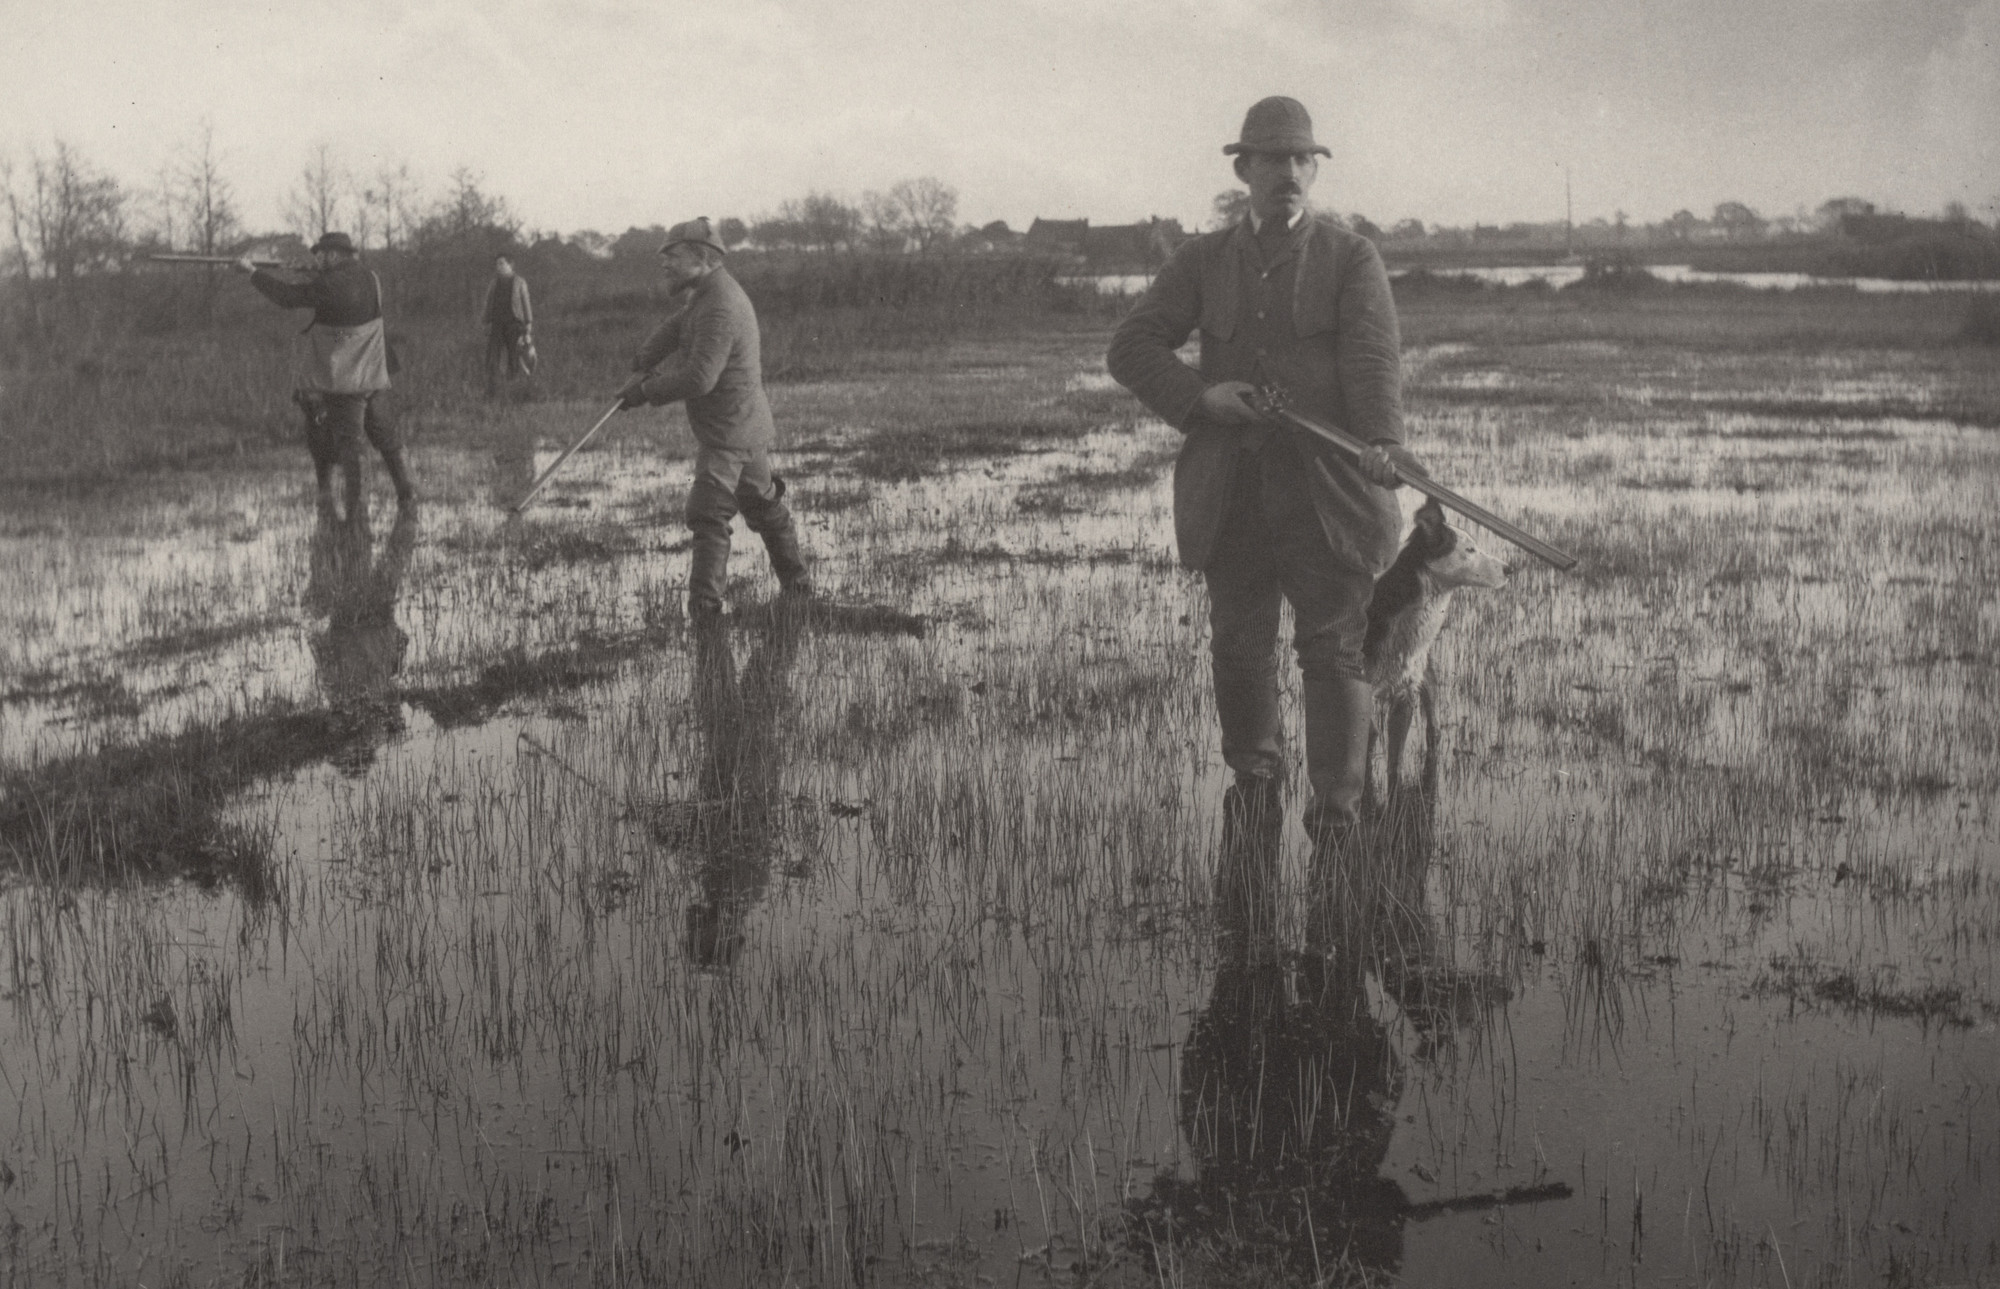 Peter Henry Emerson, T. F. Goodall. Snipe-Shooting from Life and Landscape on the Norfolk Broads (London, 1886). c. 1885